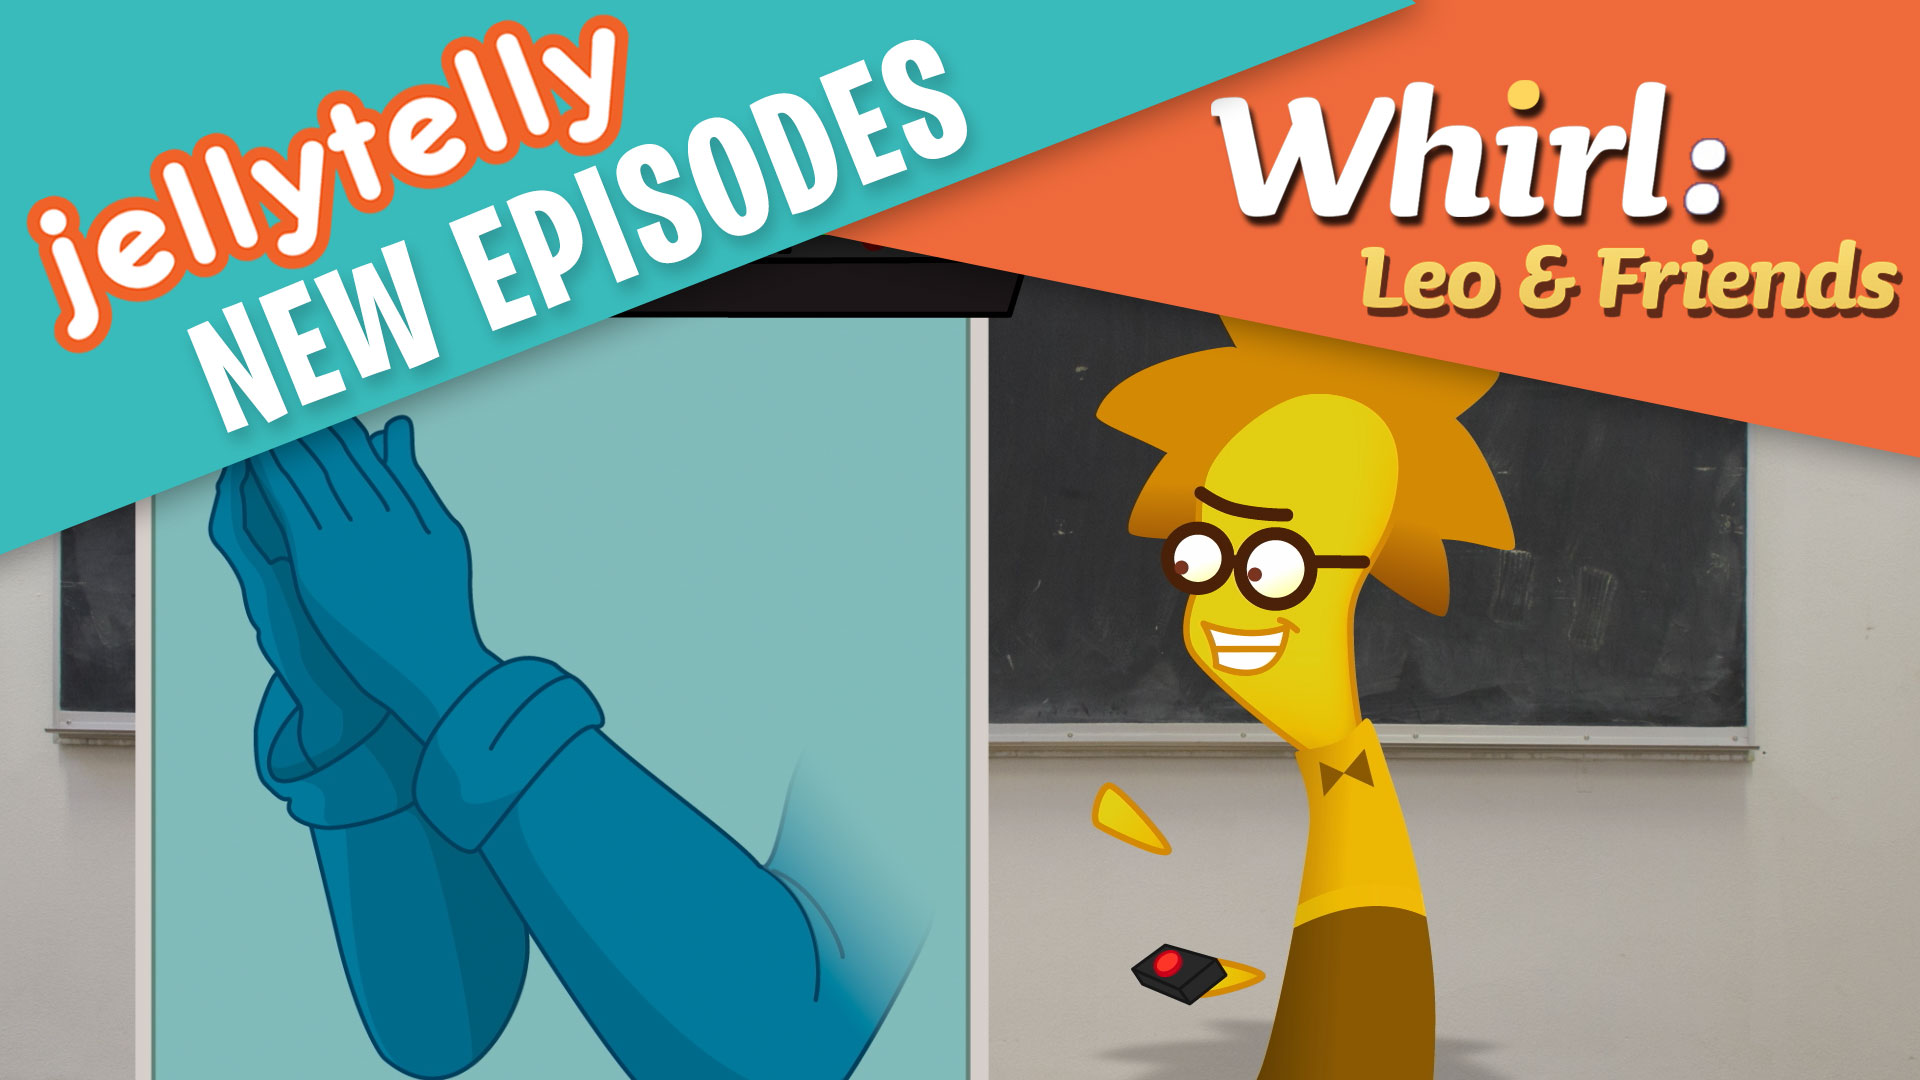 Whirl leo v4 ep14 featured preview image